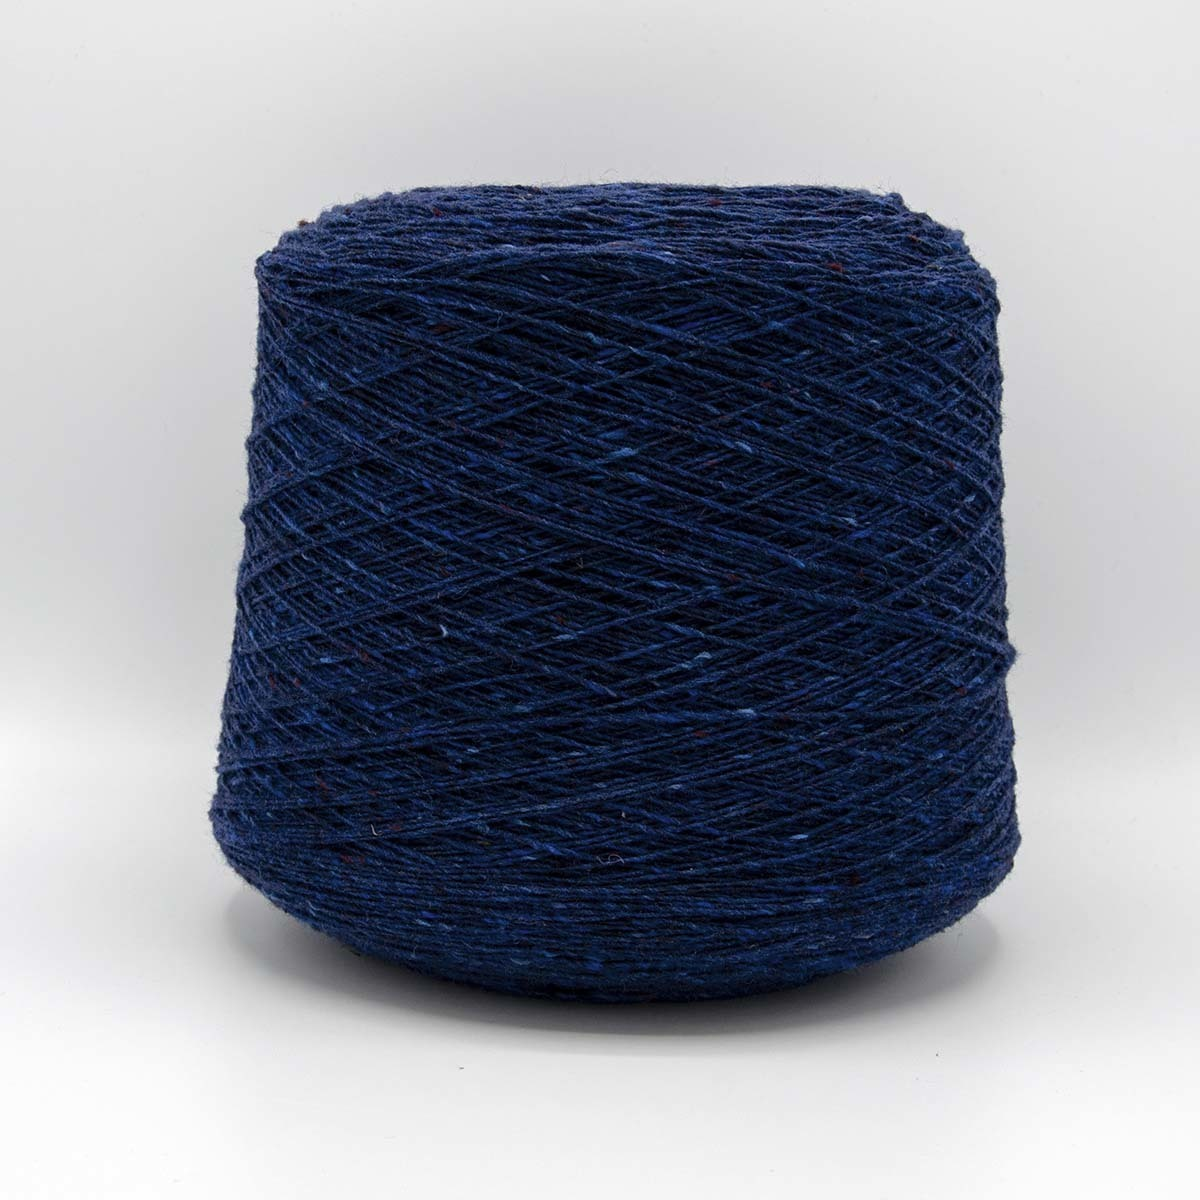 Knoll Yarns Soft Donegal (одинарный твид) - 5527